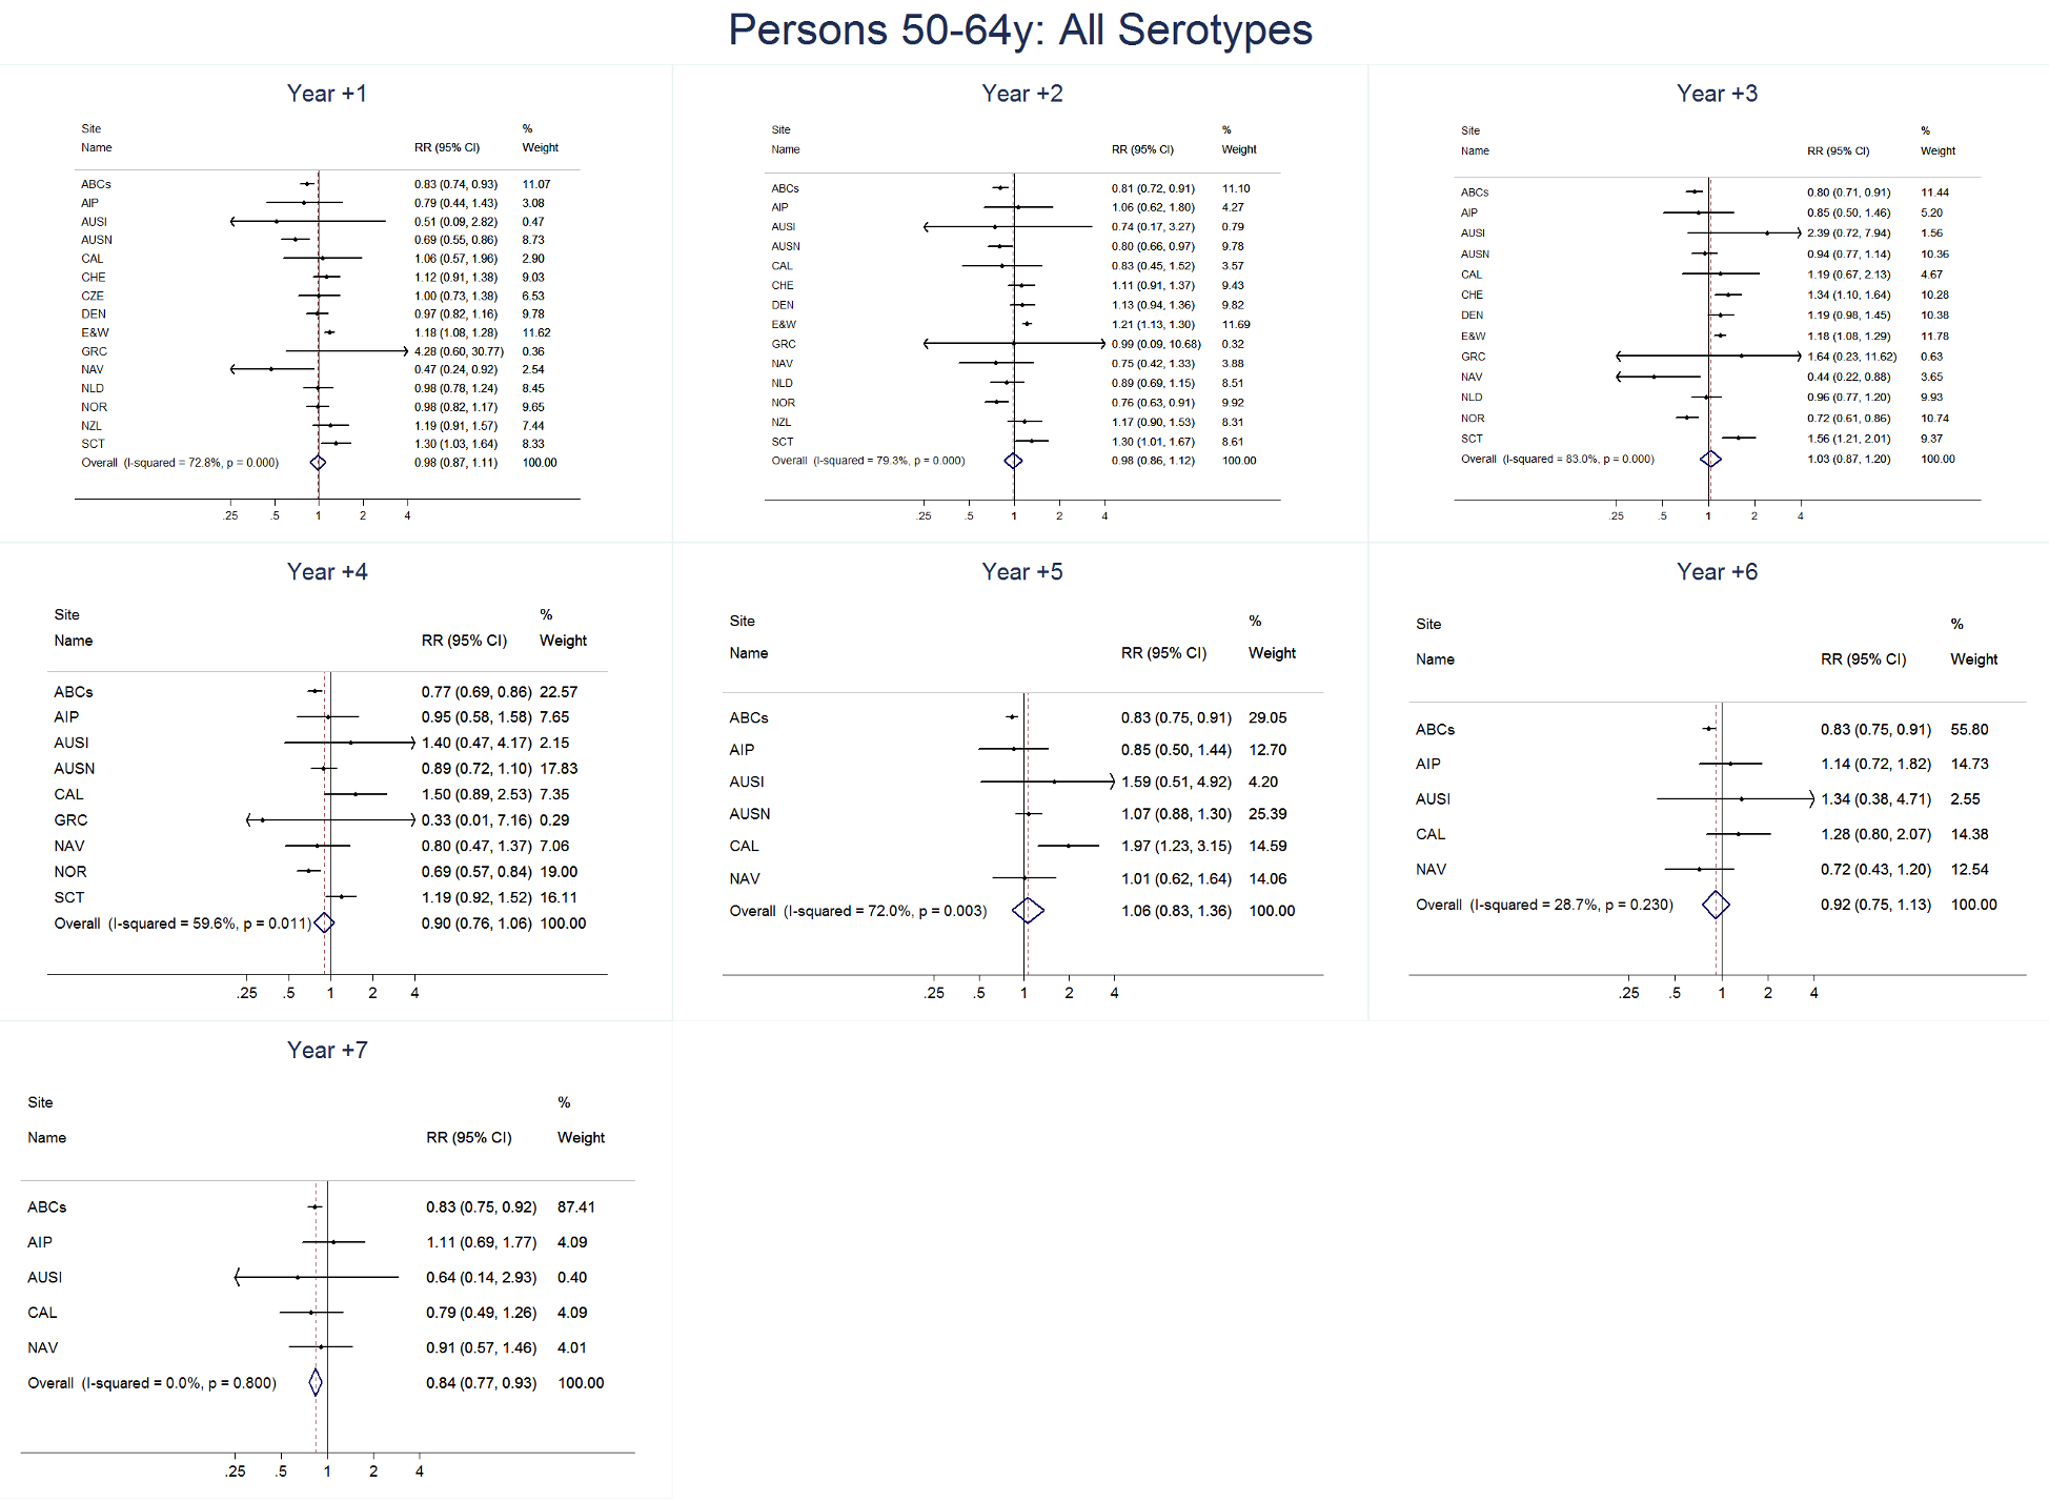 All serotype invasive pneumococcal disease summary rate ratio forest plots by post-introduction year from random effects meta-analysis for adults aged 50–64 years.